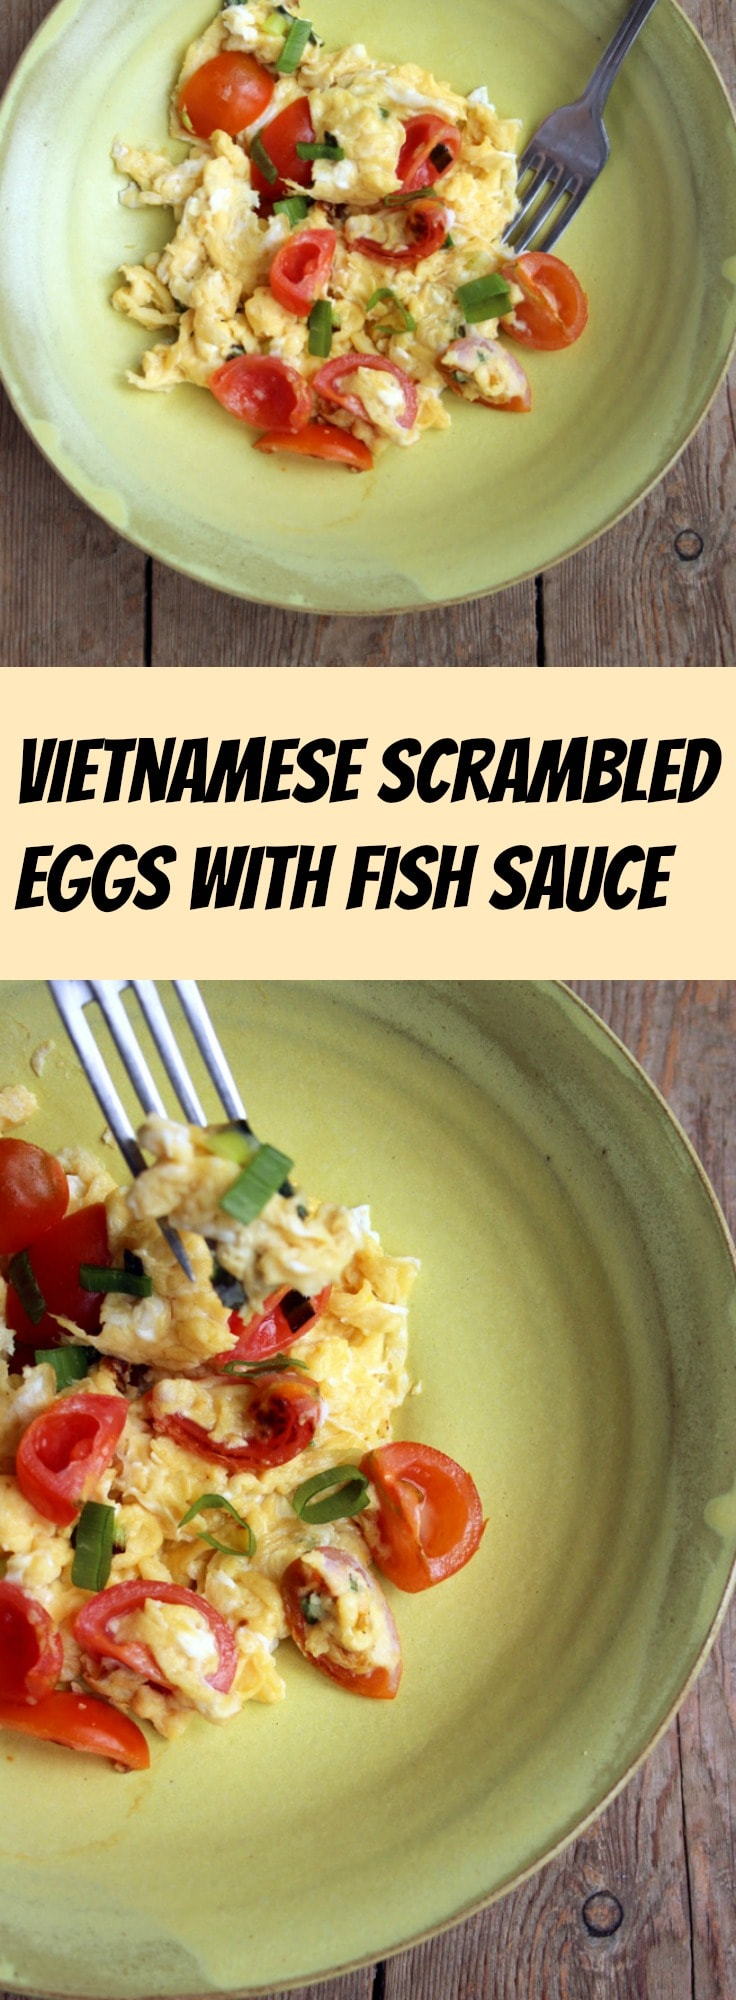 The humble scrambled egg gets an asian-style makeover that will knock your socks off: Vietnamese scrambled eggs with fish sauce is a true taste revelation. #scrambledeggs #fishsauce